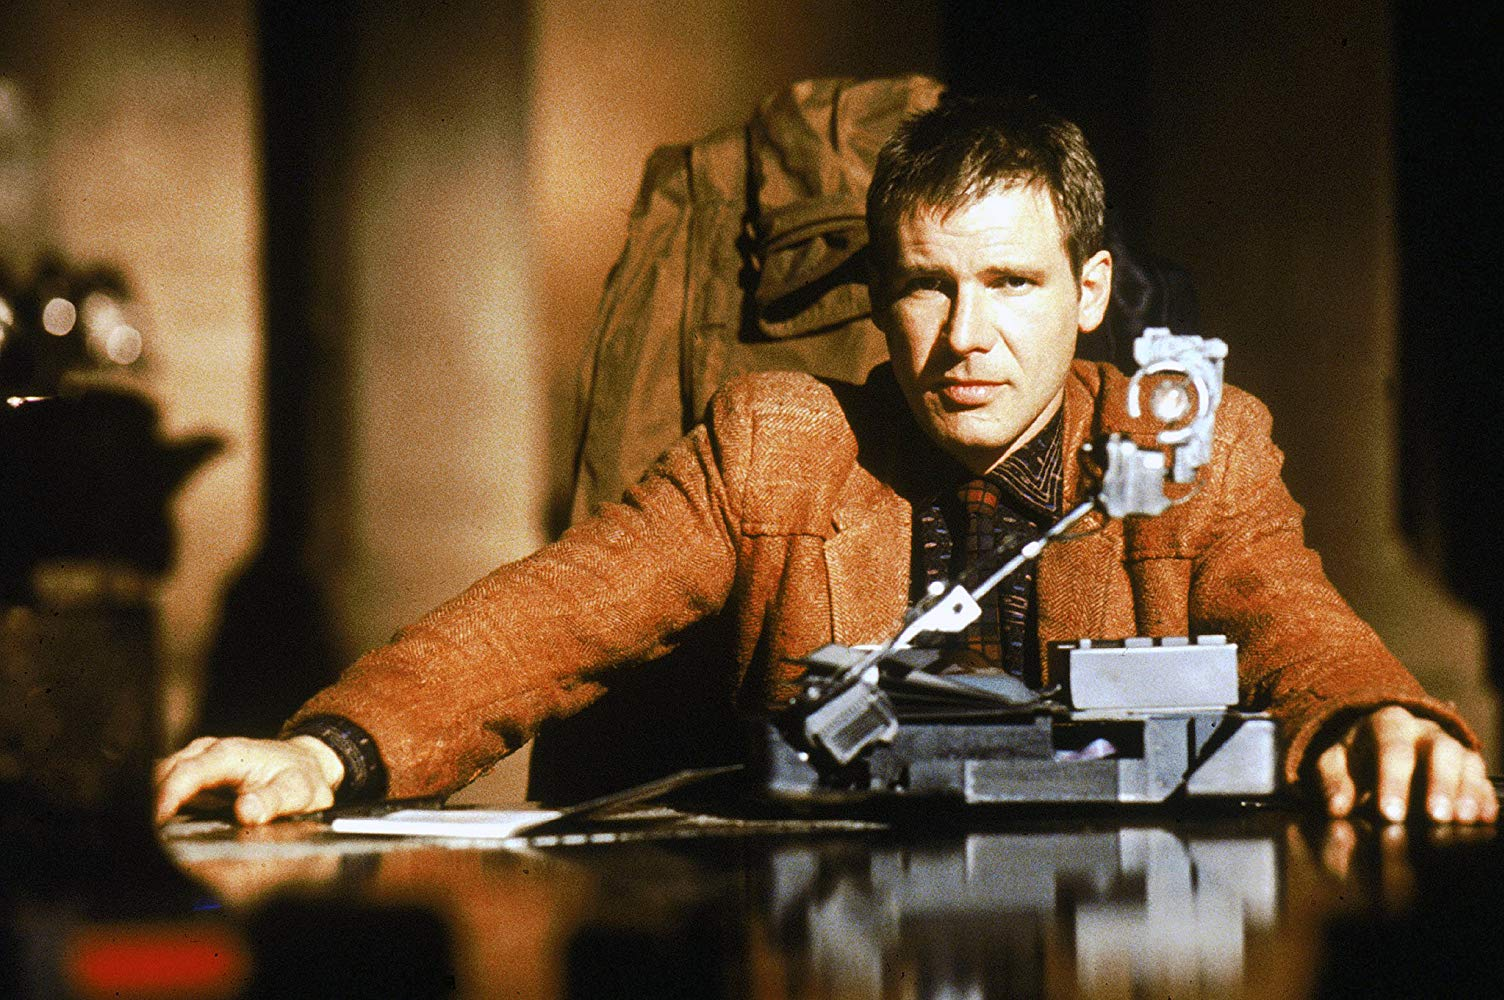 Harrison Ford in Blader Runner Blade Runner © 1982 Warner Bros. Ent. All Rights Reserved